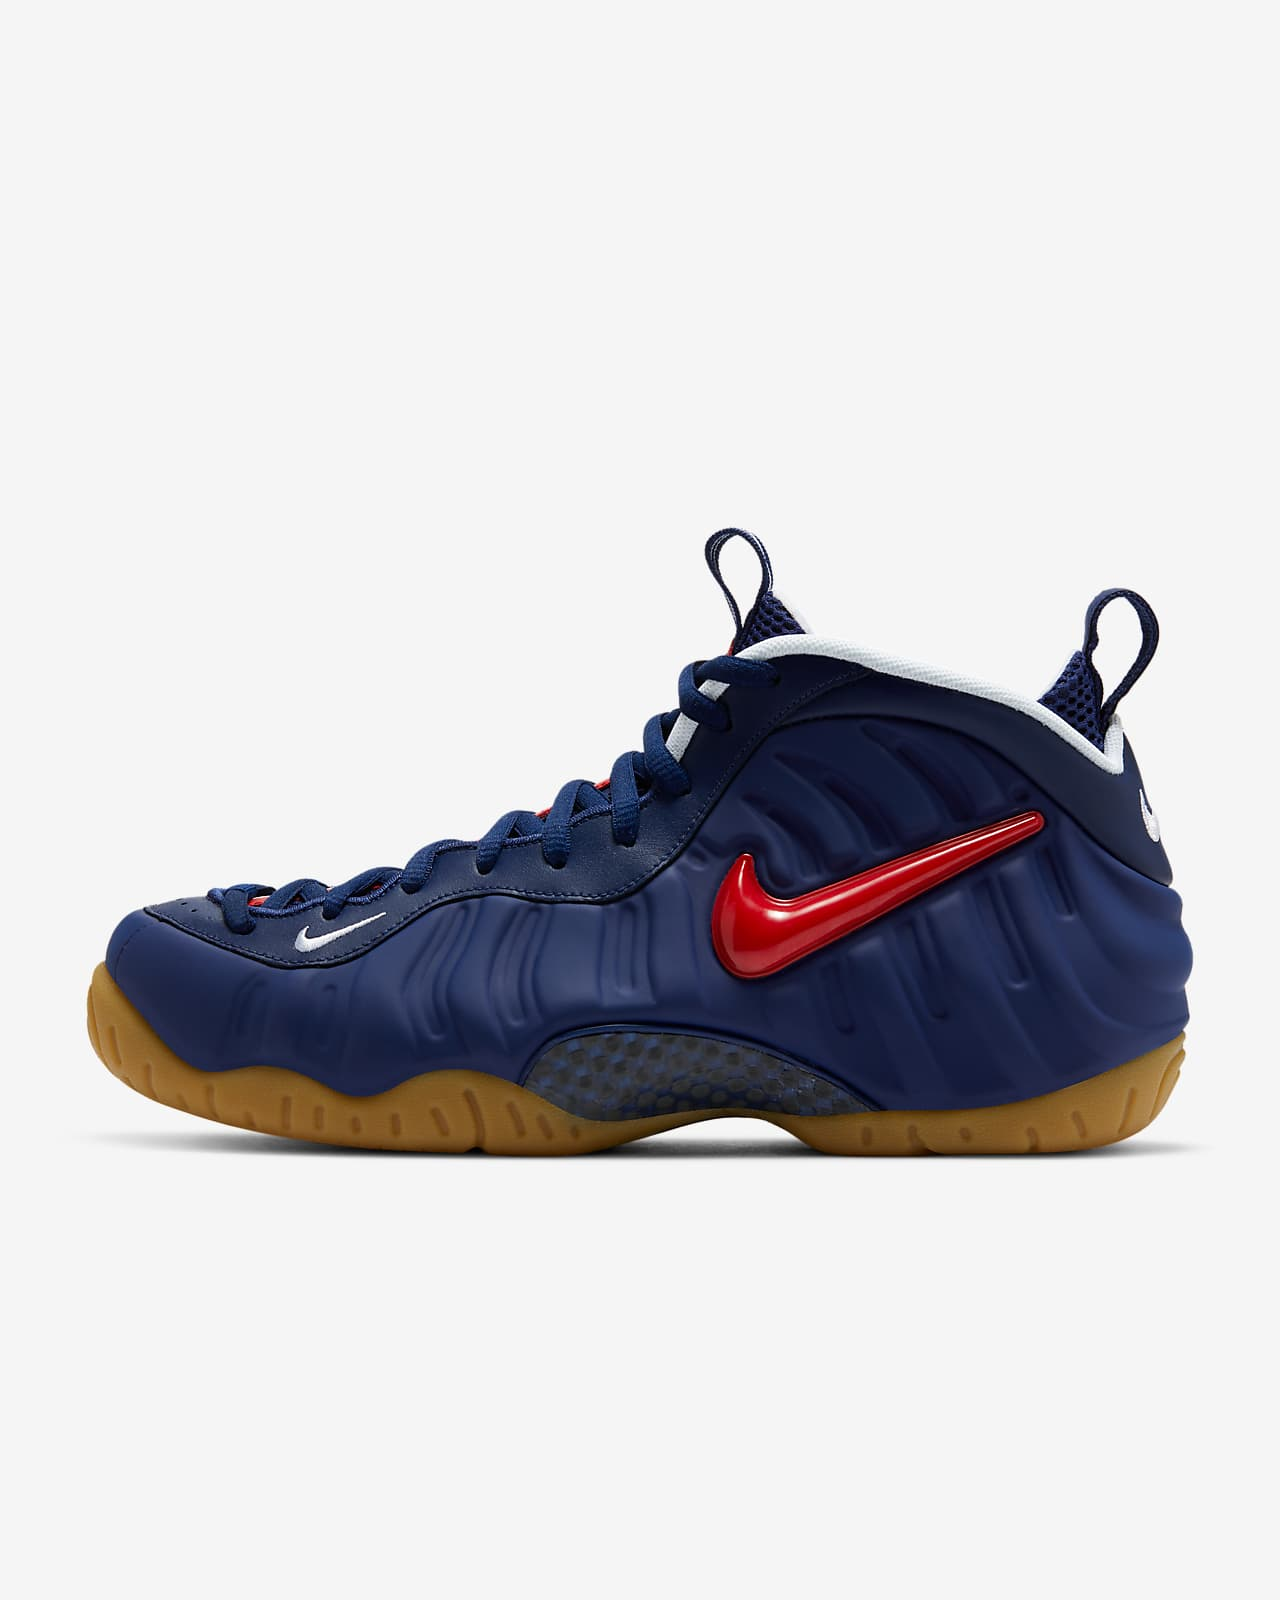 Buy Nike Air Foamposite One PRM Olympic ShoesSize 11 ...